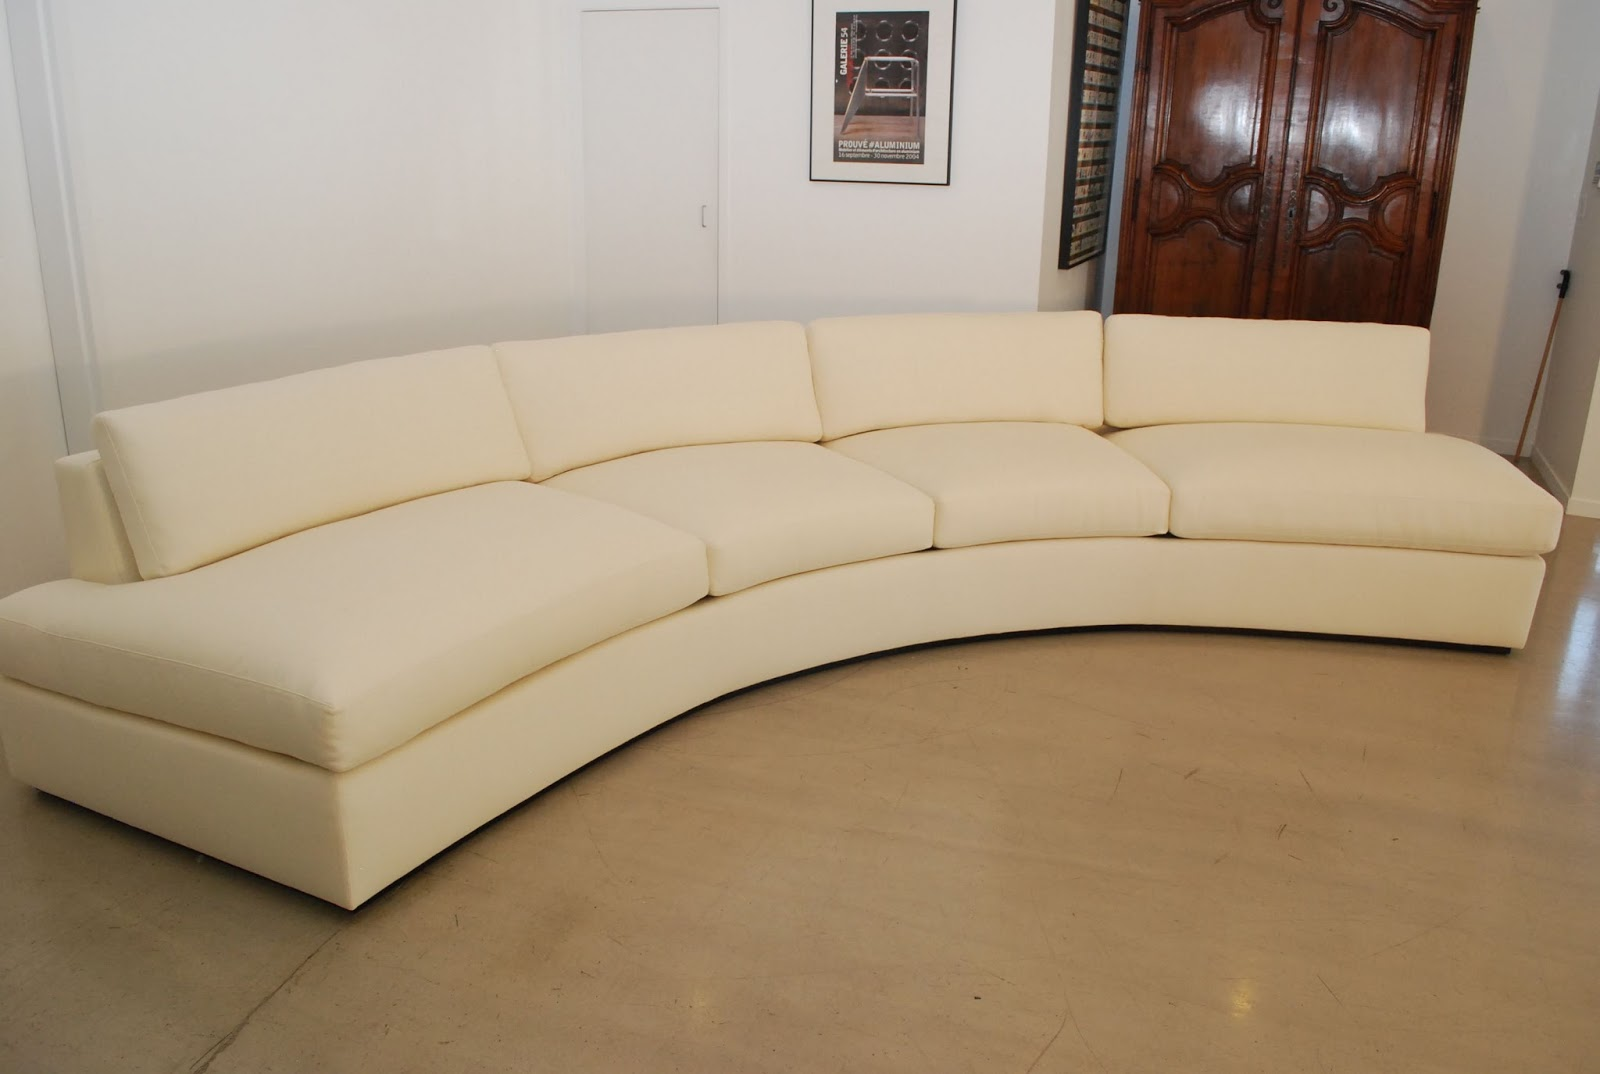 Another Recently Completed Piece Is This Milo Baughman Inspired Curved Sofa.  We Tried To Stay True To His Style Aesthetic, Injecting Our Own Standards  For ...